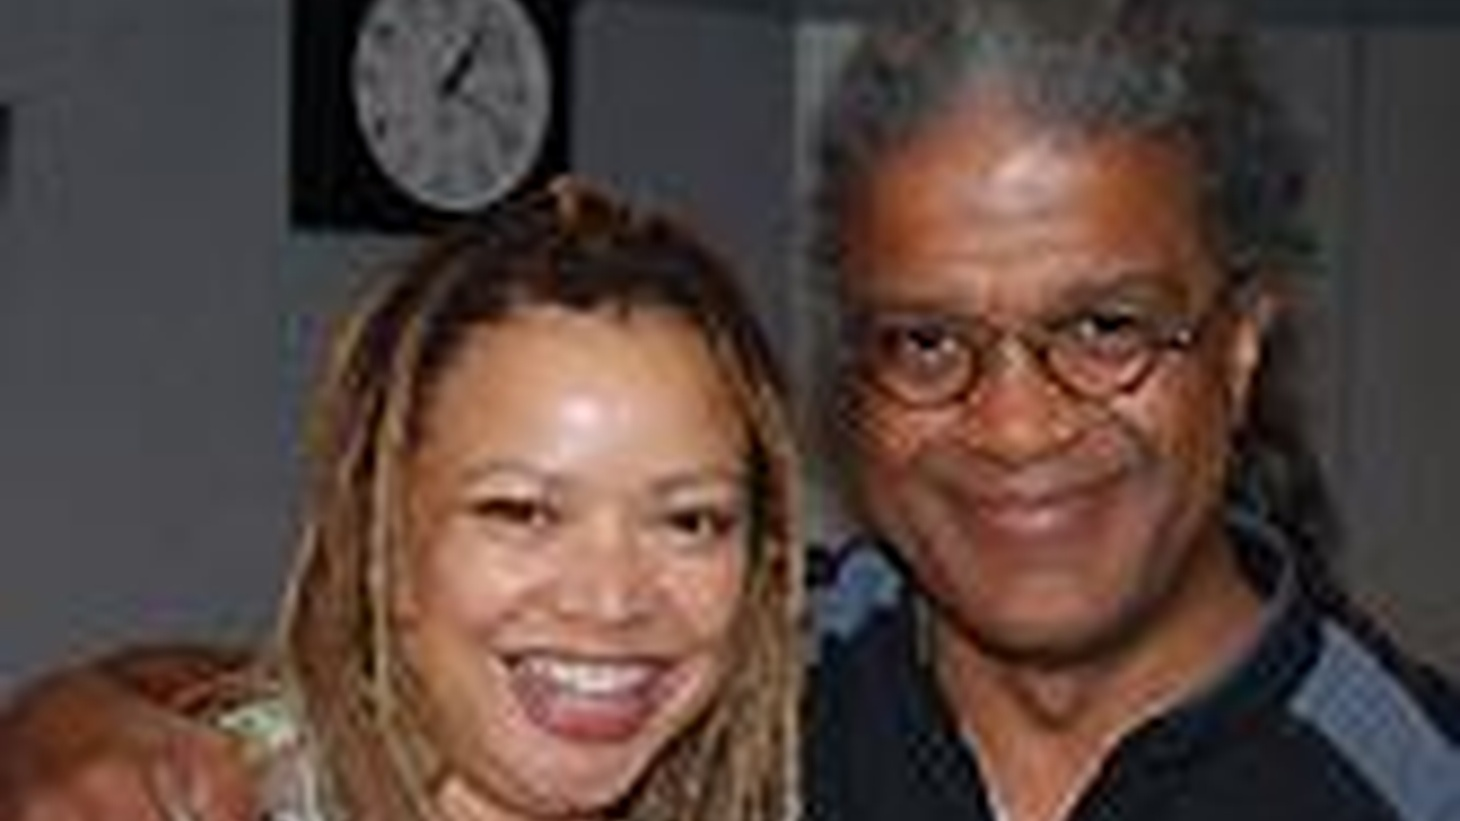 """Seventies DJ Ralph """"Petey"""" Greene was an old-school rapper with a truth-telling style. Don Cheadle brings him to life in the film Talk to Me. The director, Kasi Lemmons (Eve's Bayou), drops by to put the spotlight on radio on film."""